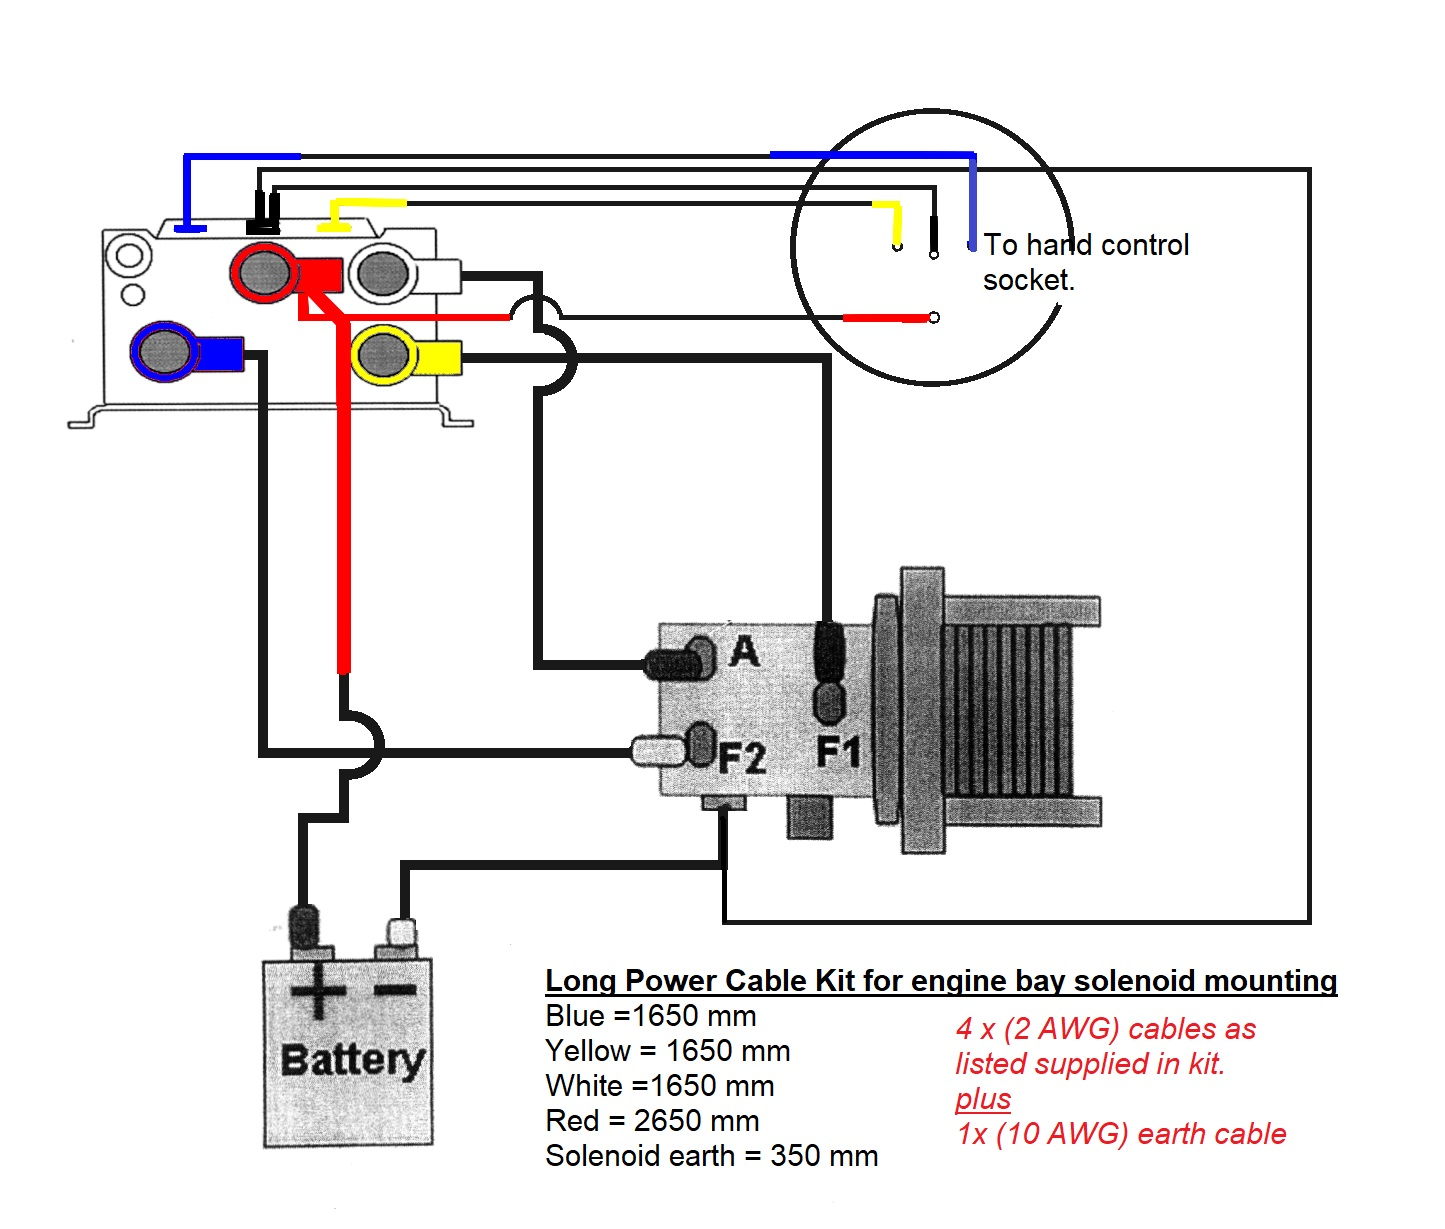 Series Winch Solenoid Wiring - Box Wiring Diagram on ramsey winch solenoid wiring diagram, superwinch solenoid wiring diagram, 12 volt 4 terminal solenoid wiring diagram, four-wire 12 volt solenoid diagram, good windlass diagram, 4-wire solenoid diagram,